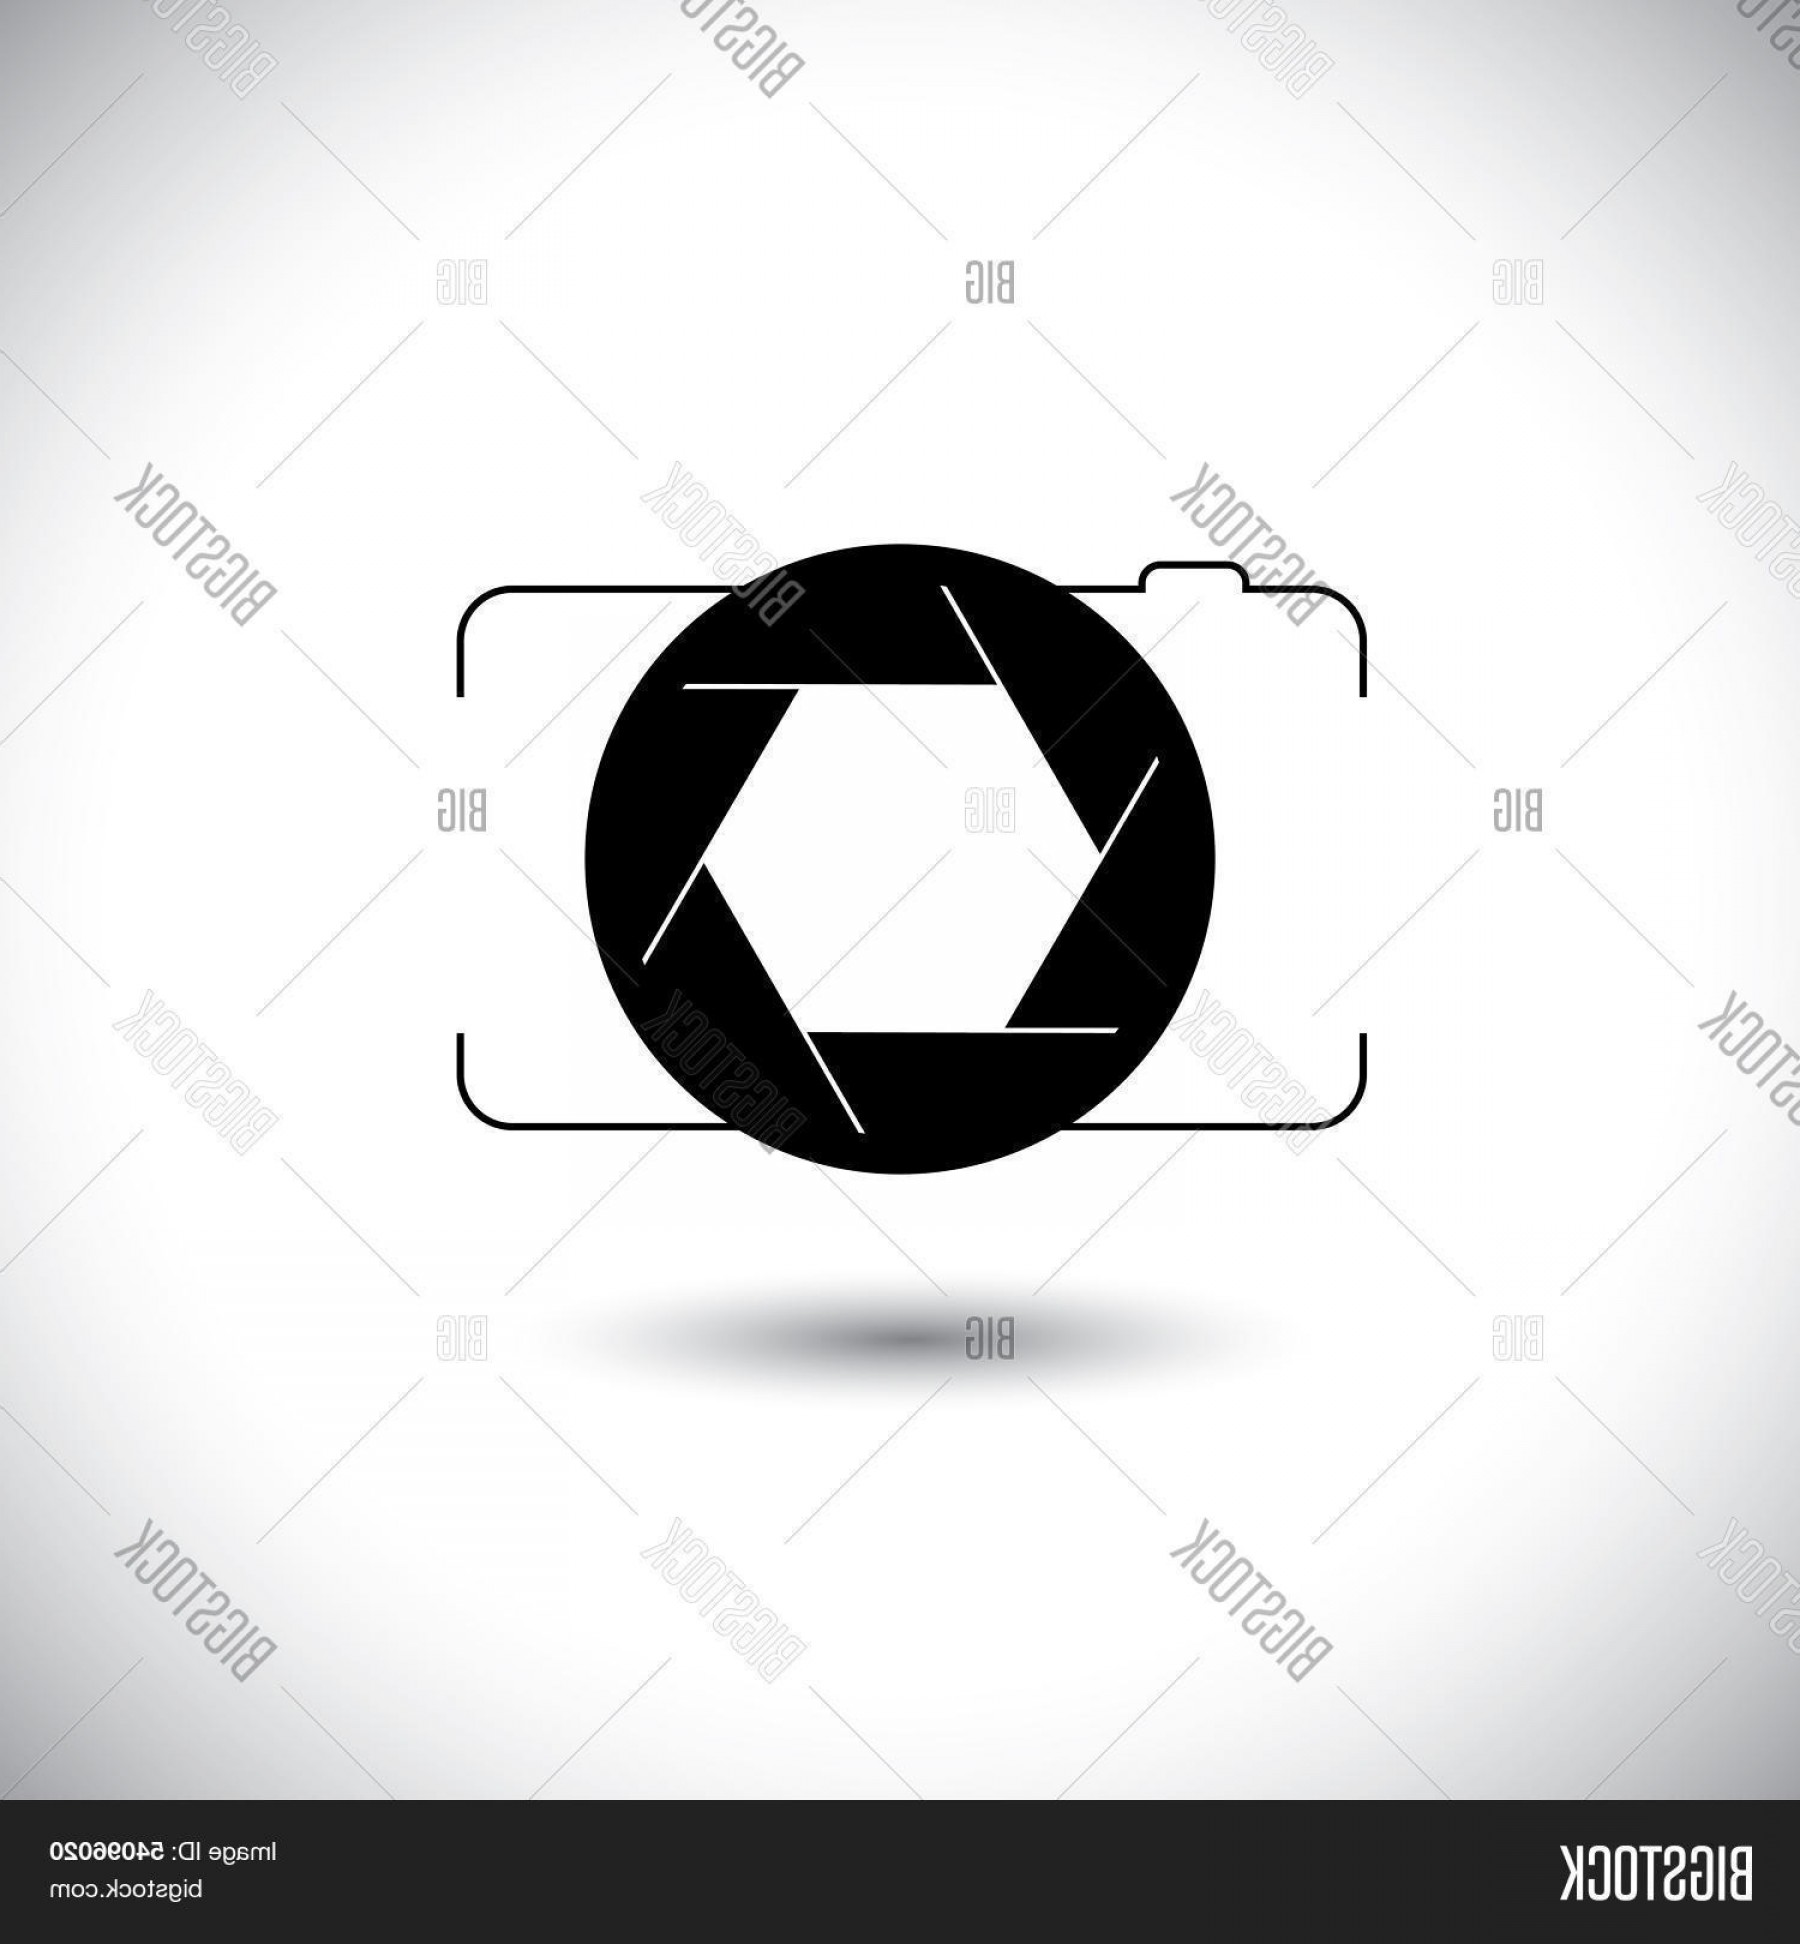 Abstract Football Vector Outline: Stock Vector Abstract Digital Camera Shutter Icon Outline Front View